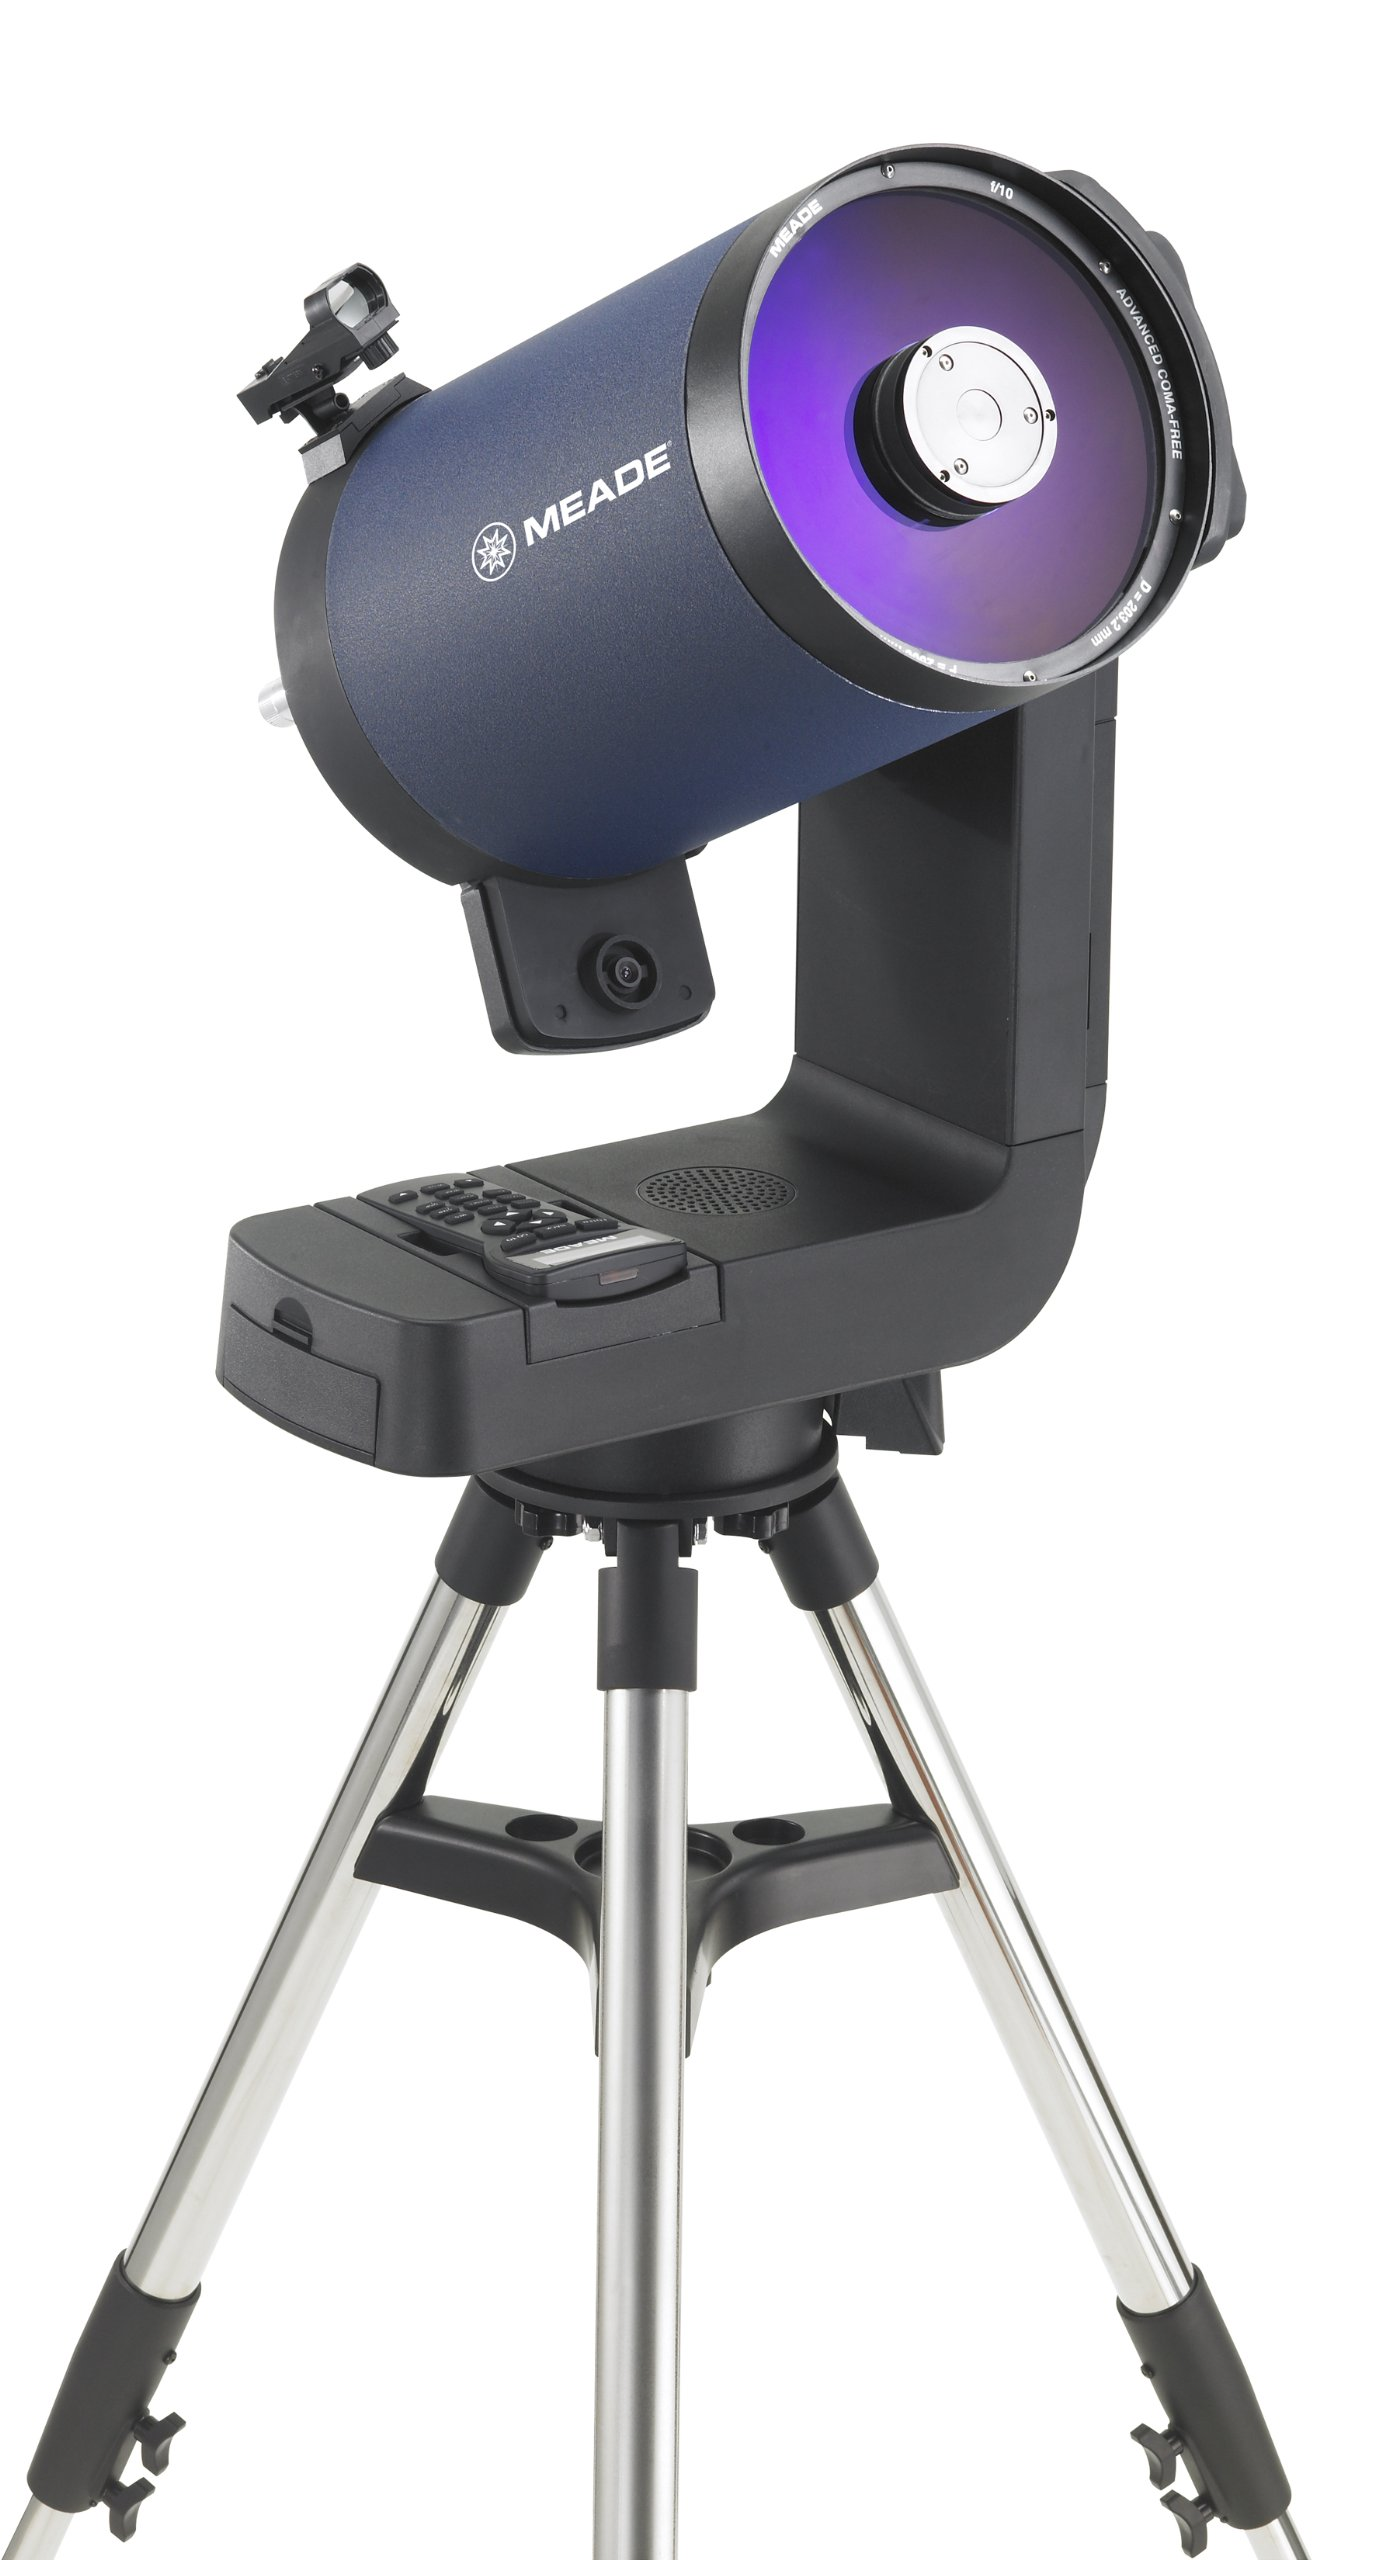 Meade Instruments 8-inch LightSwitch Series Telescope with Advanced Coma-Free Optics by Meade Instruments